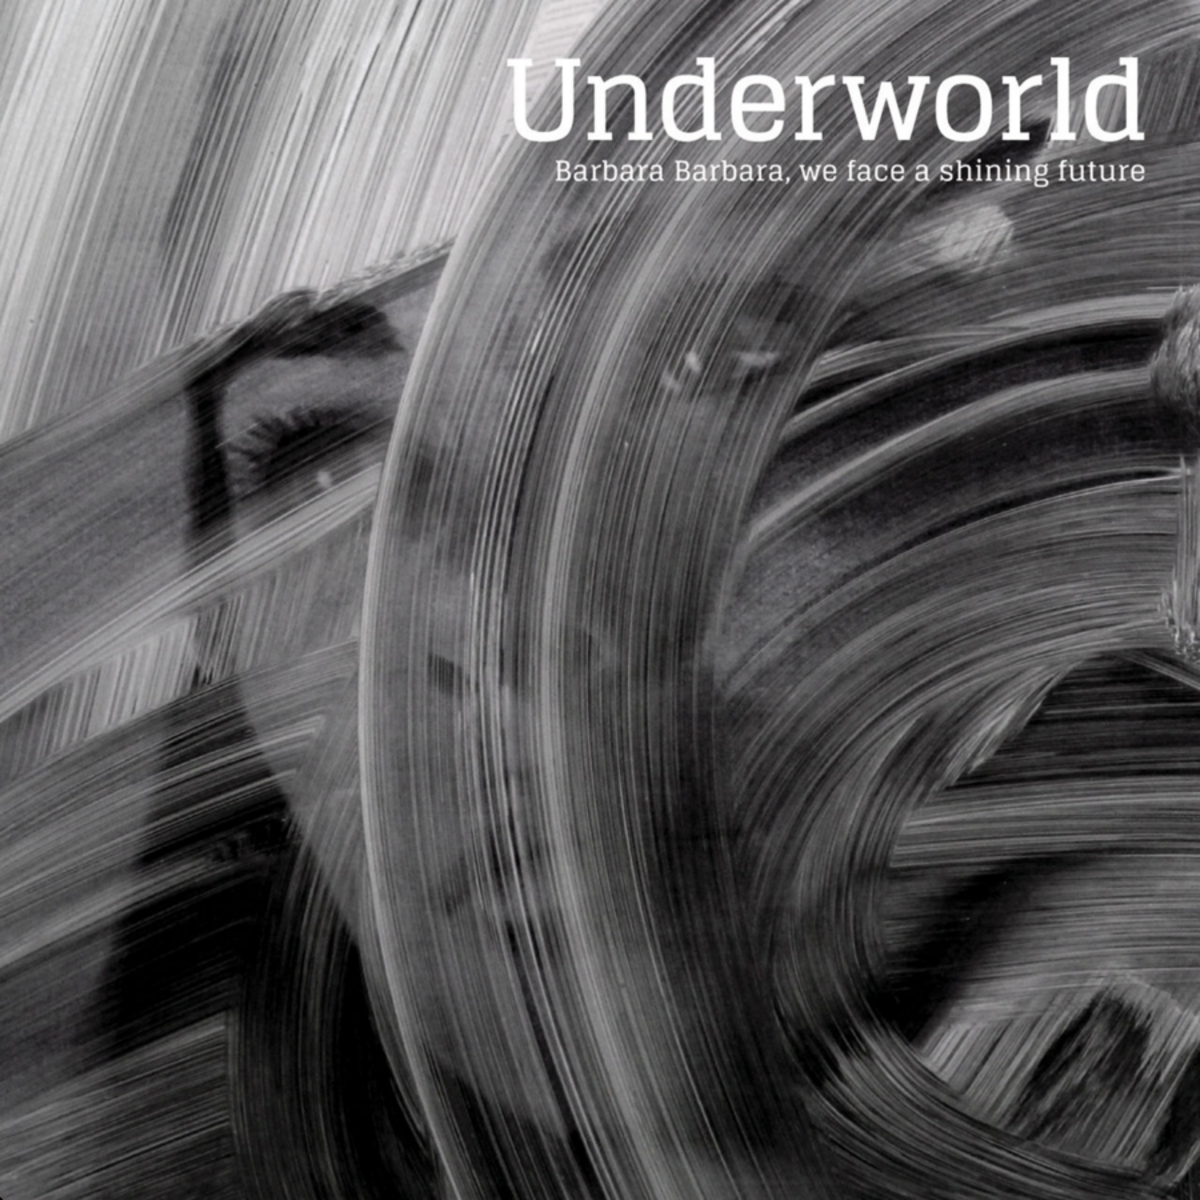 underworld-barbara-barbara-face-shining-future-album-stream.png